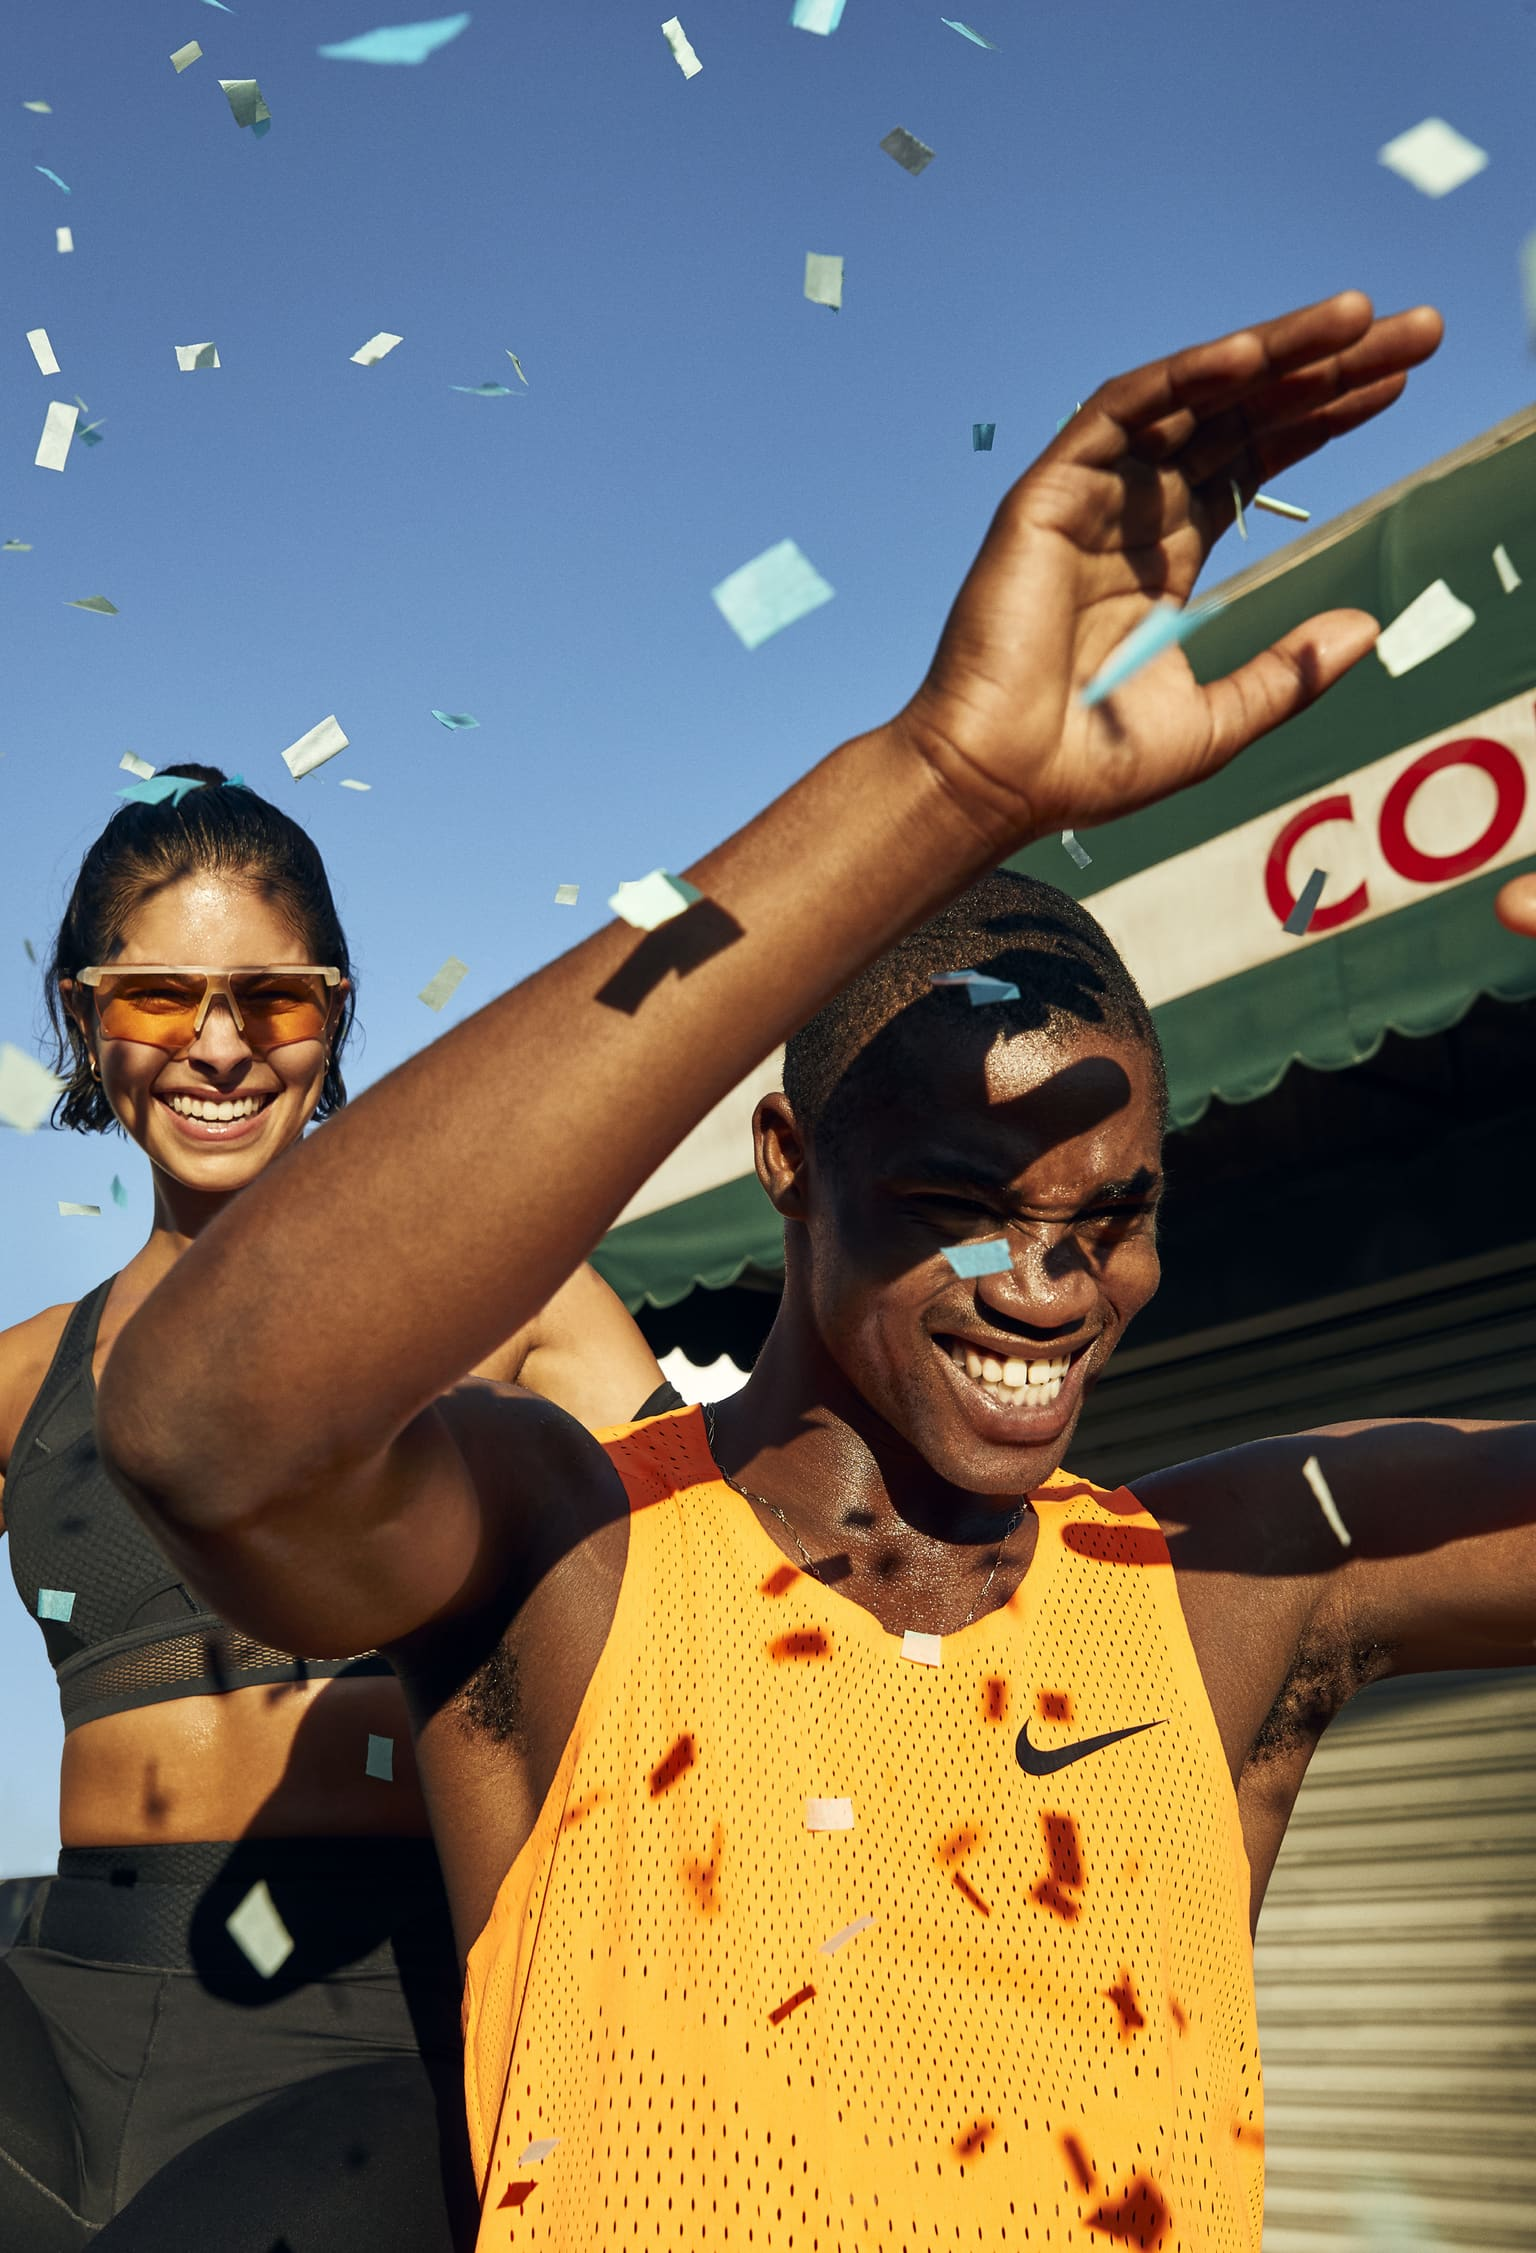 How Do I Share My Run on Social Media with Nike Run Club? | Nike Help